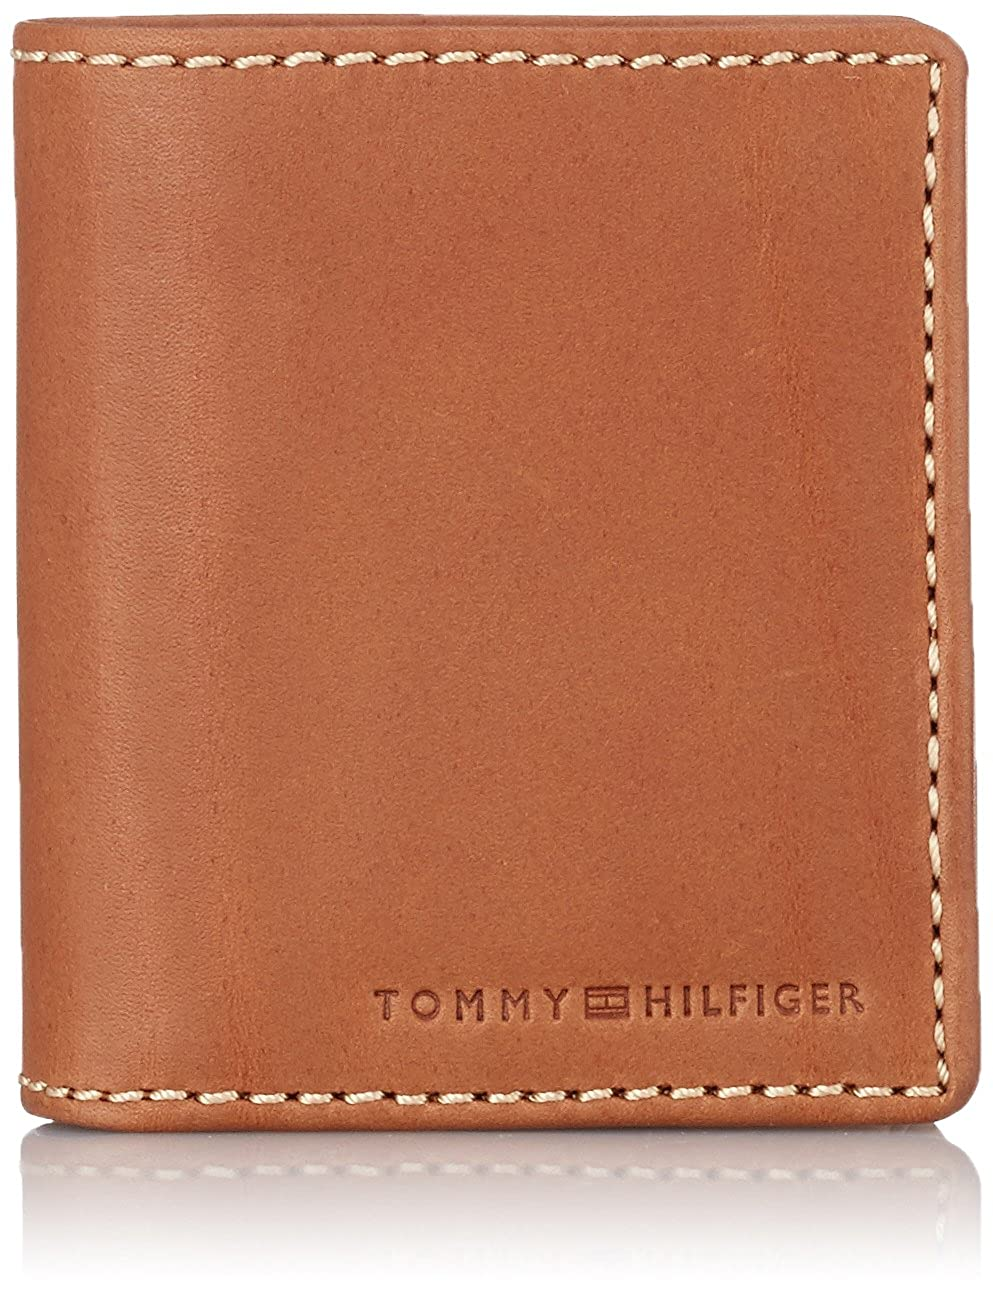 Tommy Hilfiger - Th Casual N/s Trifold, Monederos Hombre ...